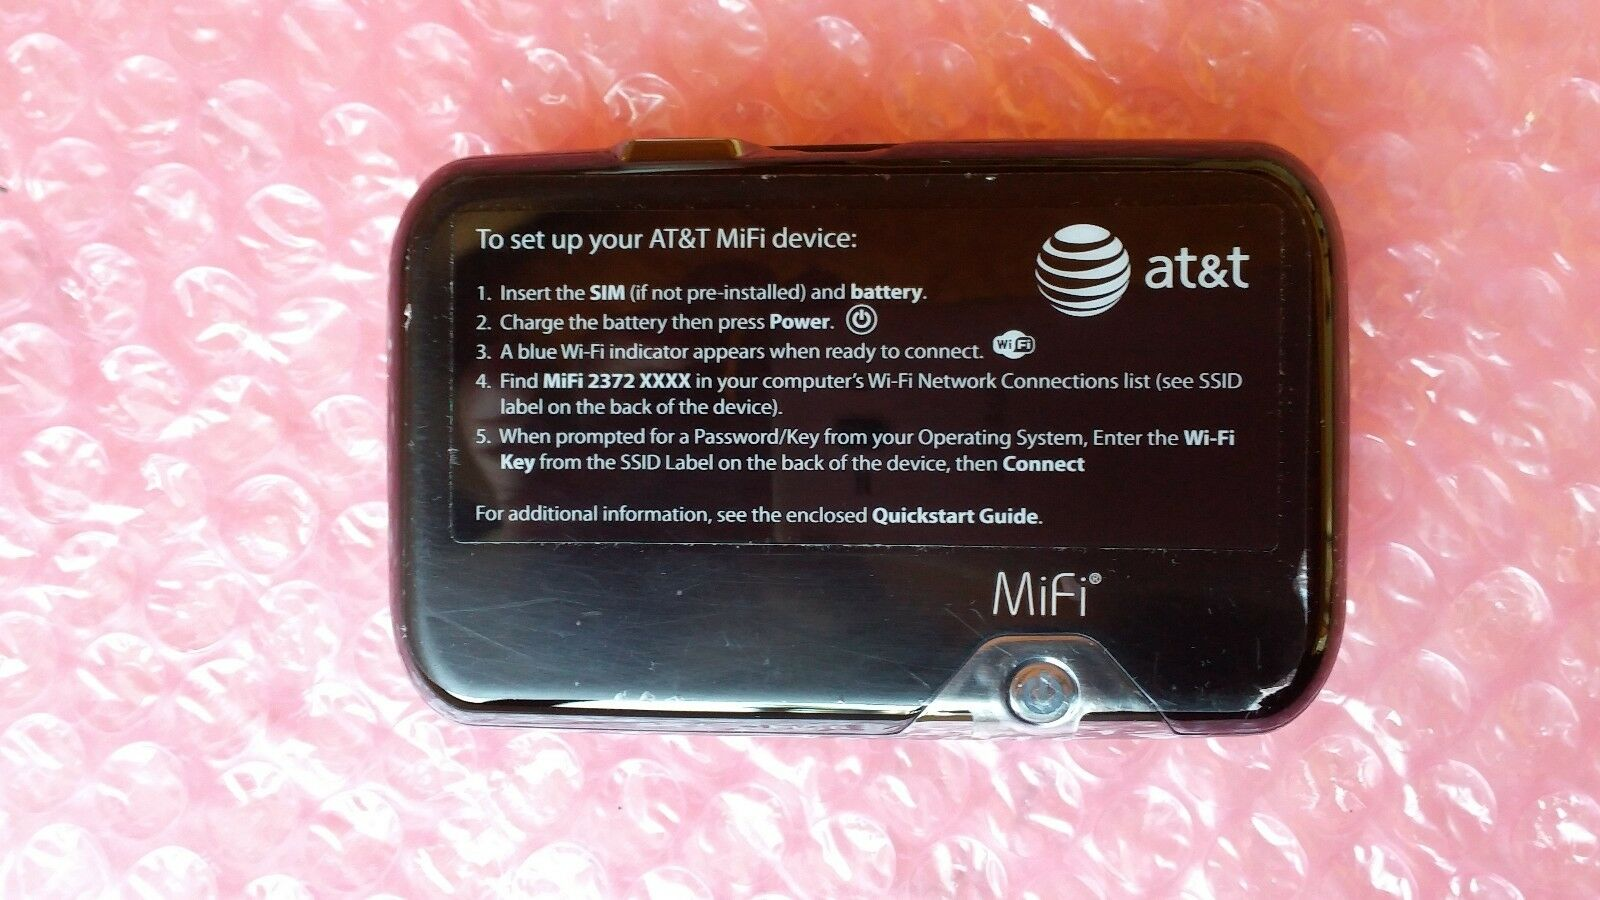 novatel mifi 2372 wireless g router ebay rh ebay com at&t mifi 2372 manual at&t mifi 2372 manual